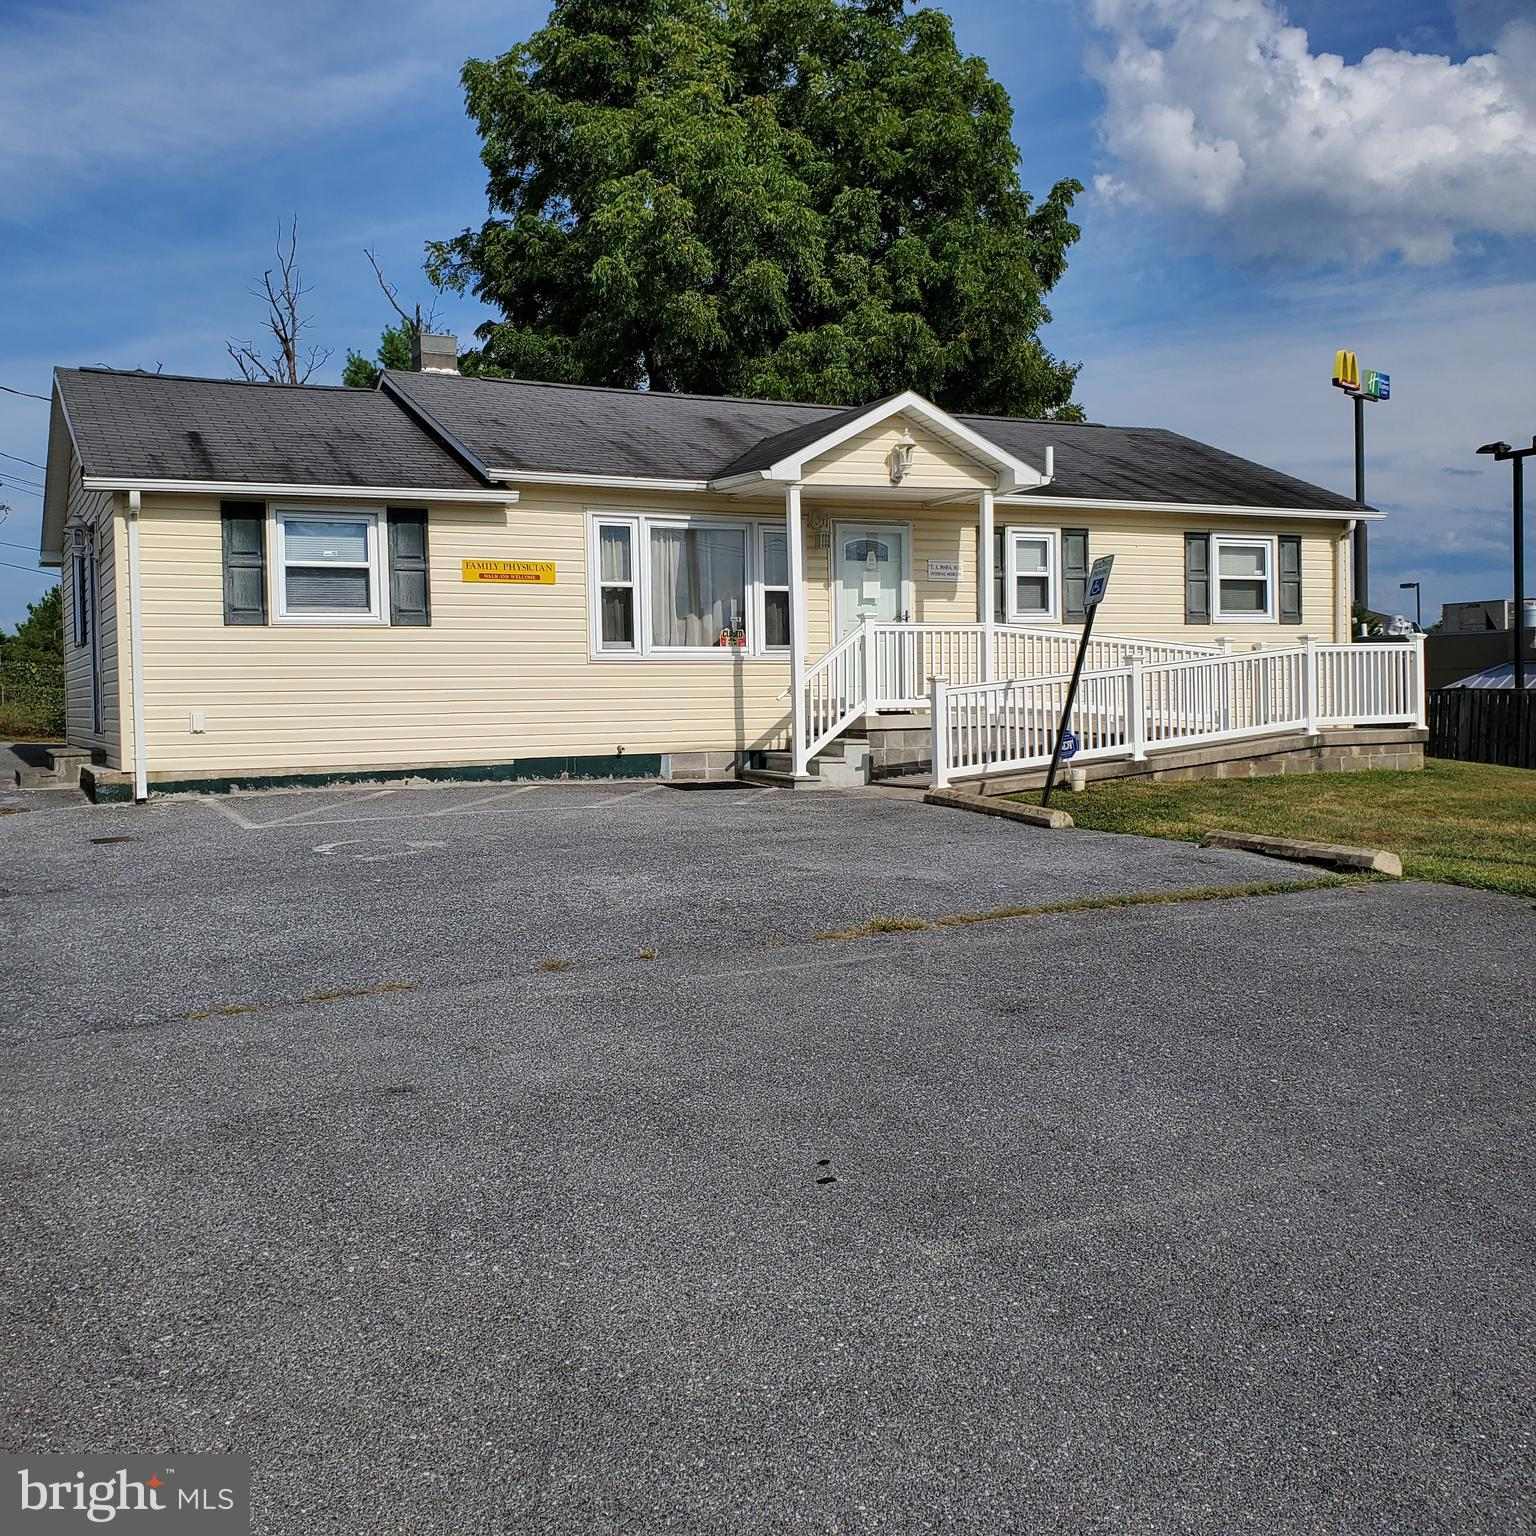 14 S MILL STREET, CLEAR SPRING, MD 21722